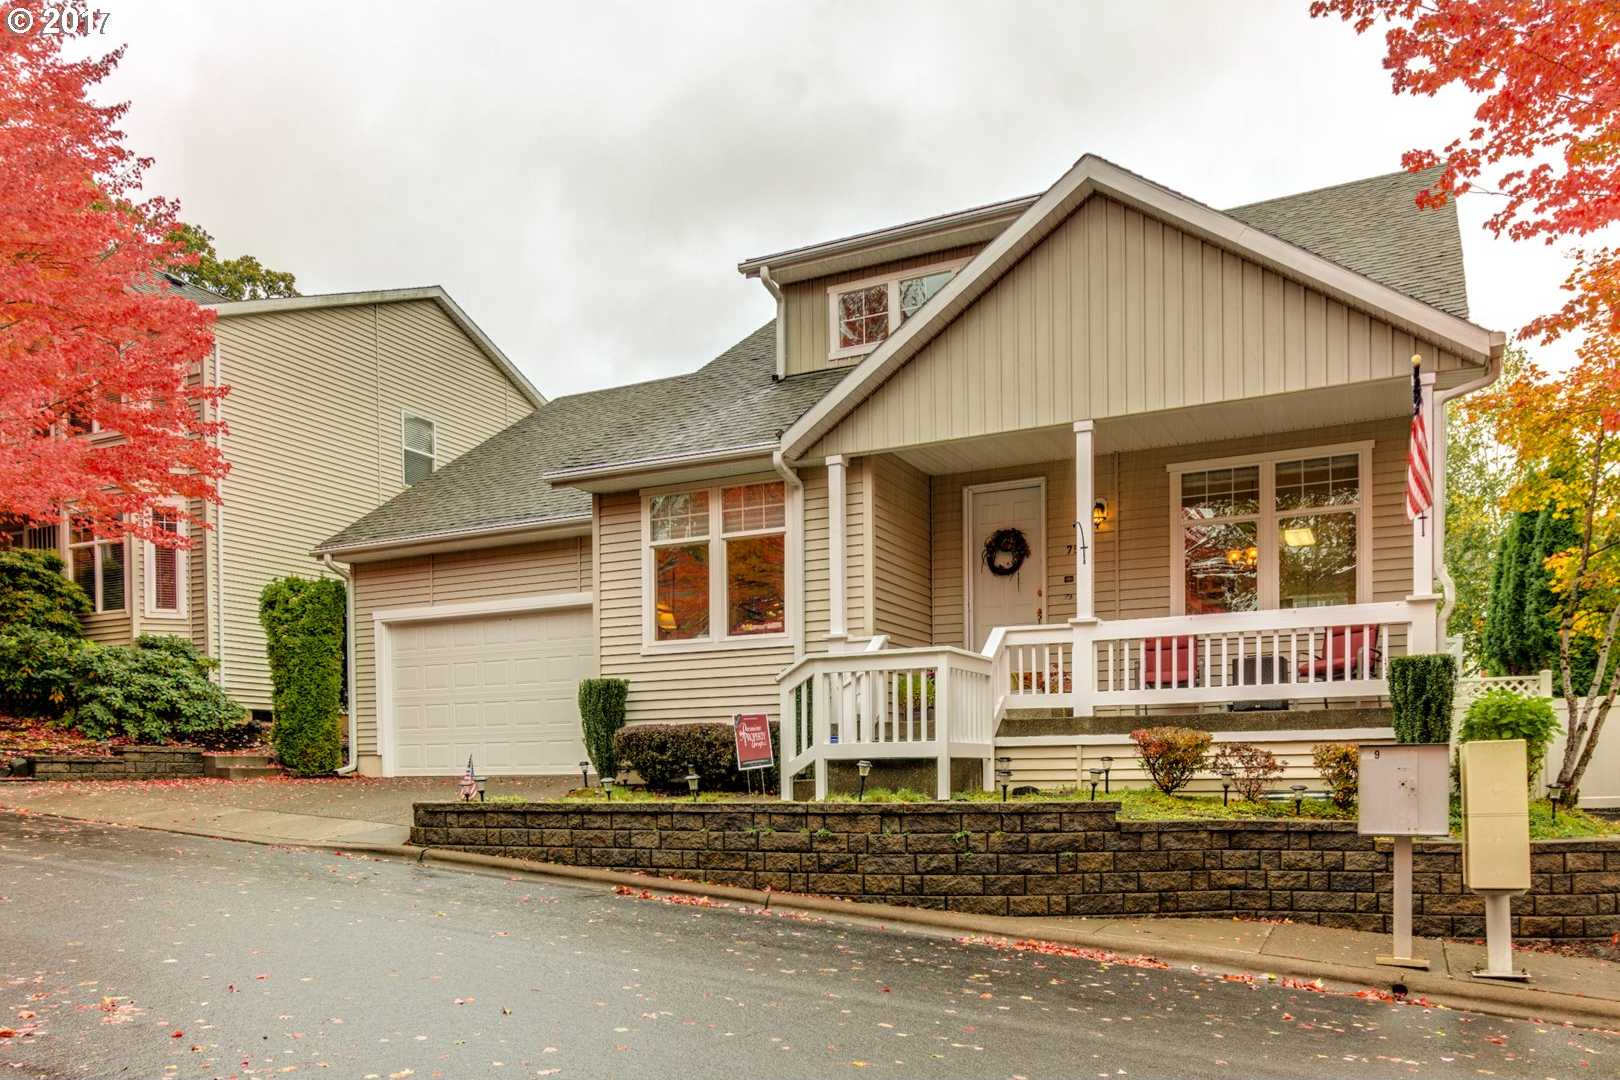 $459,950 - 3Br/3Ba -  for Sale in Canyon Creek Meadows, Wilsonville